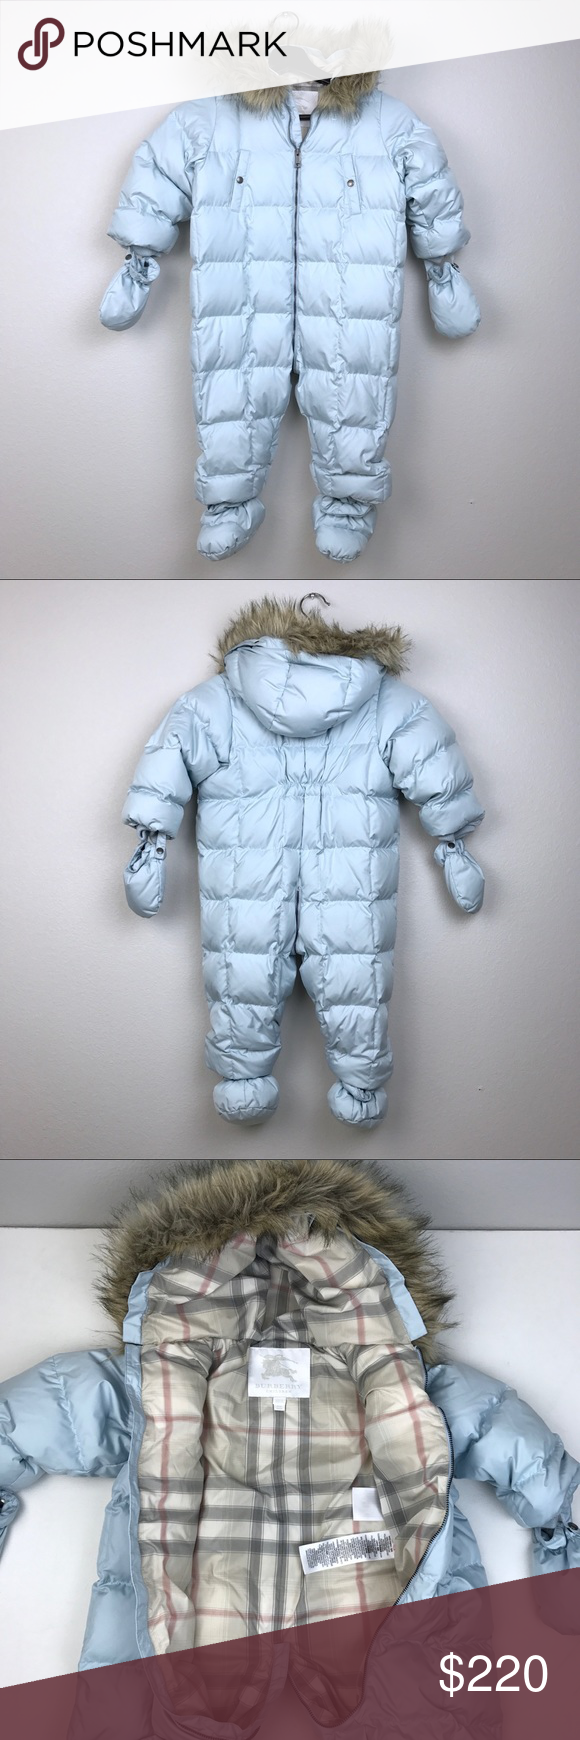 9ce0431134b5 Burberry Baby Blue Down Filled Puffer Snow Suit Burberry Baby Down Filled  Puffer Snow Suit in Powder Blue Size 24 Month. A water-repellent puffer  suit with ...